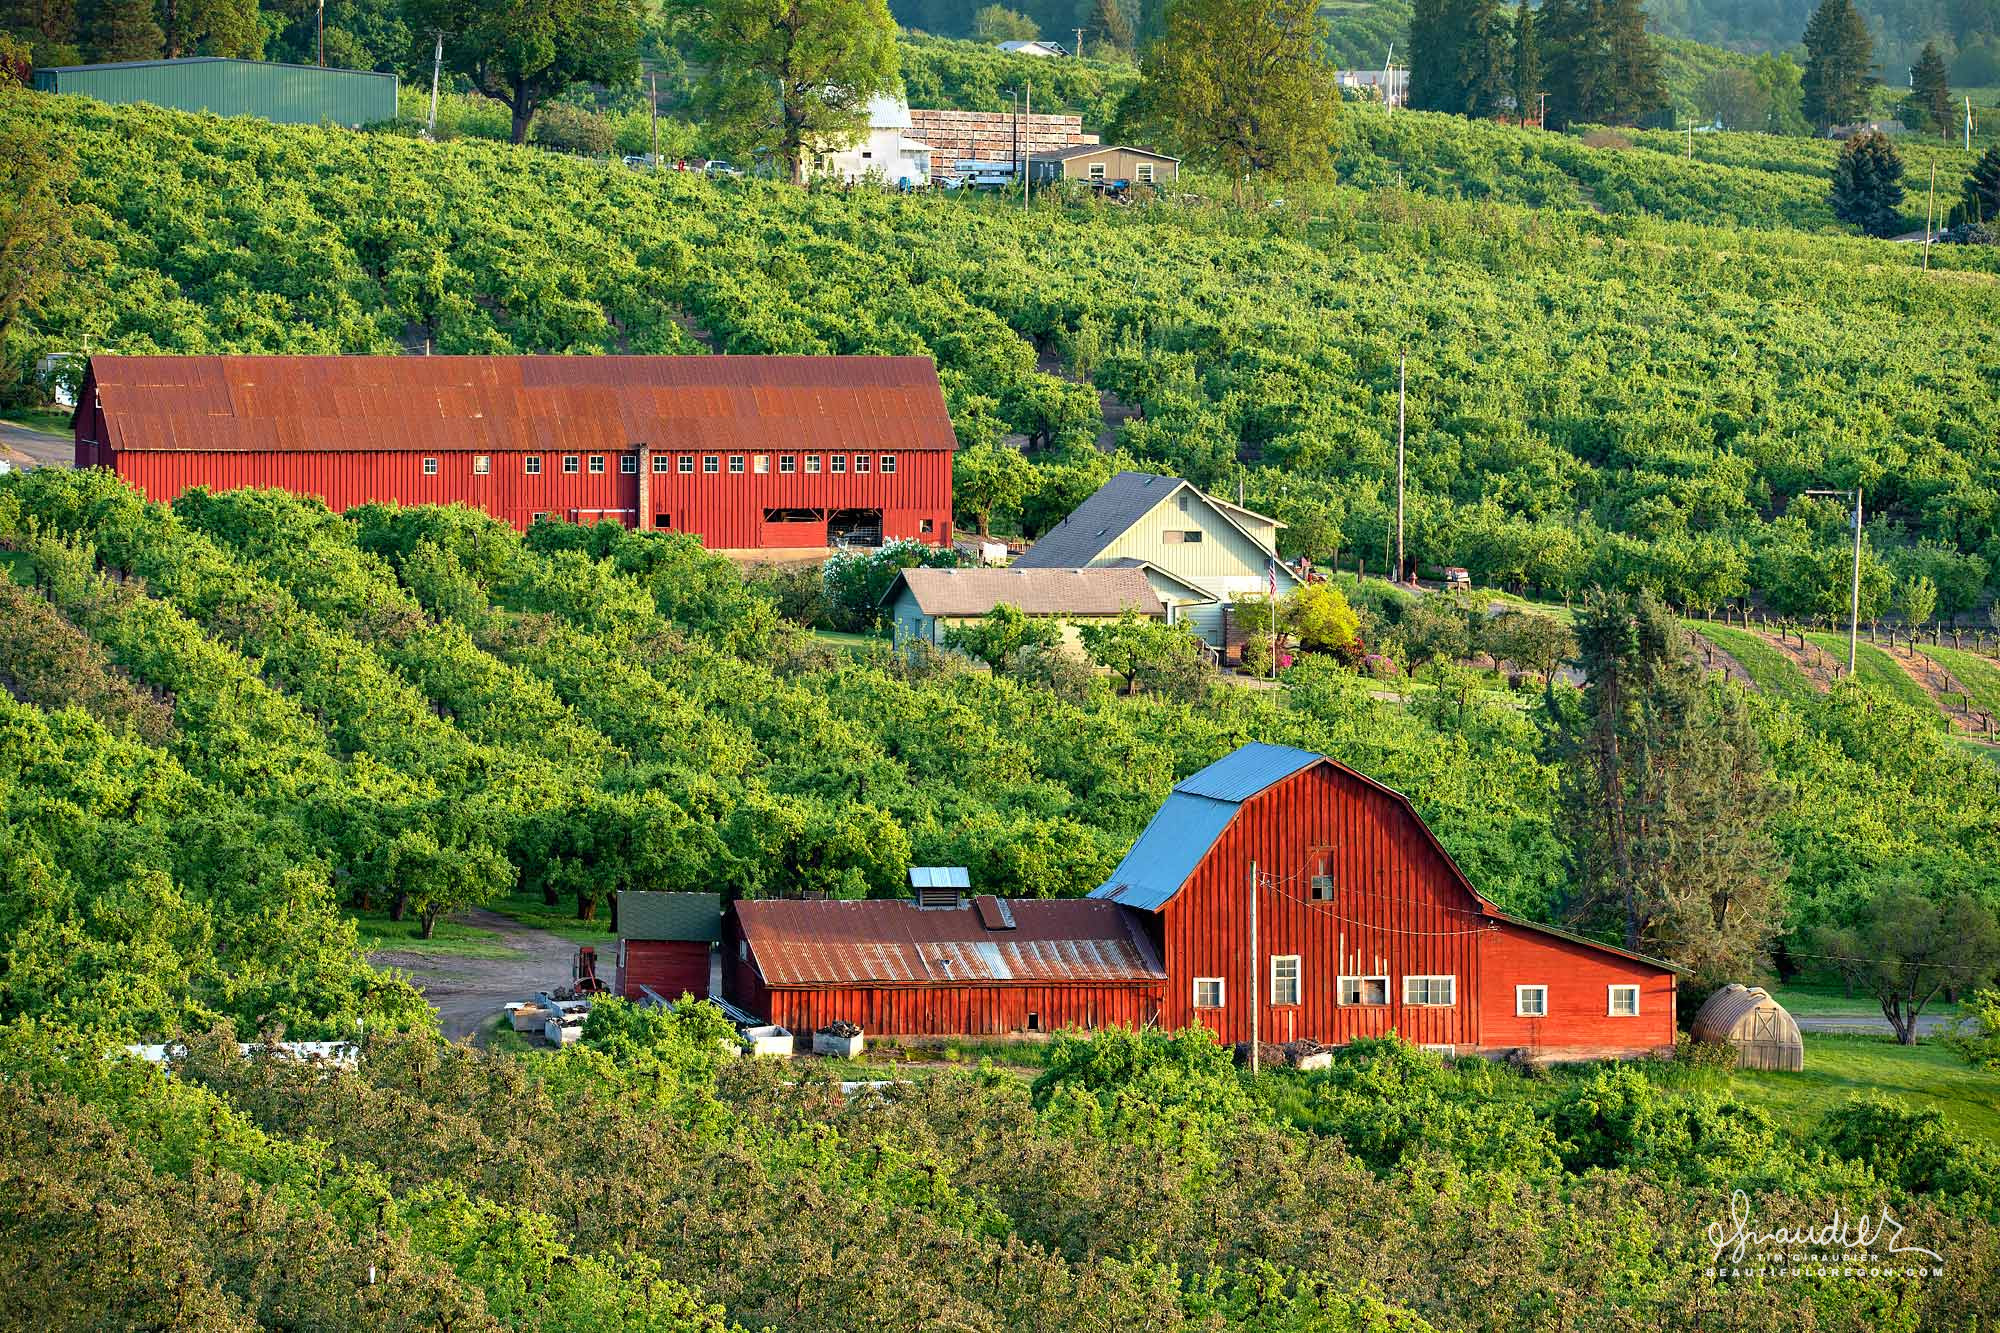 Hood River apple orchards. Agriculture of Hood River County and Oregon.